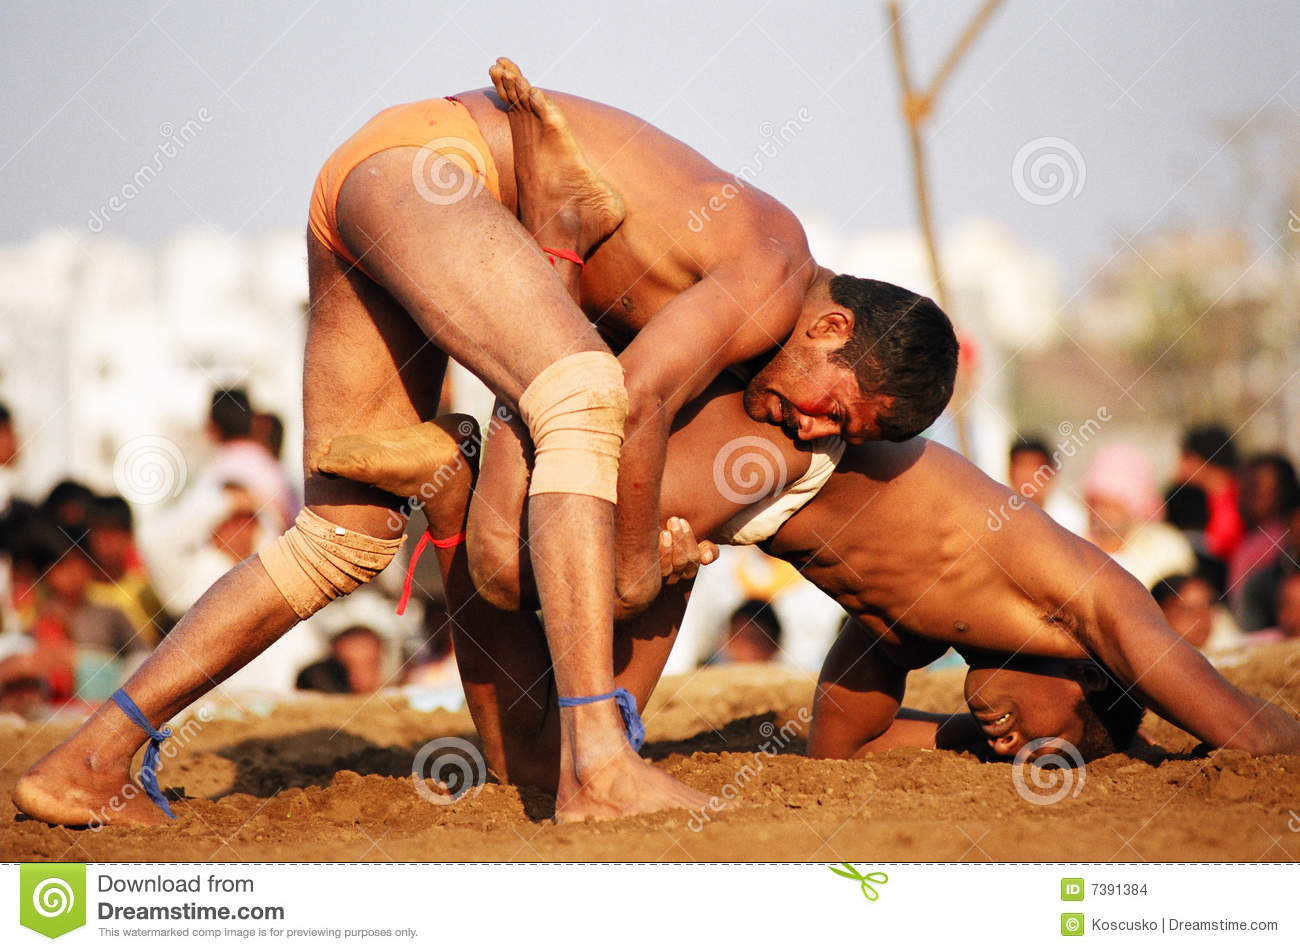 Kushti fight, India